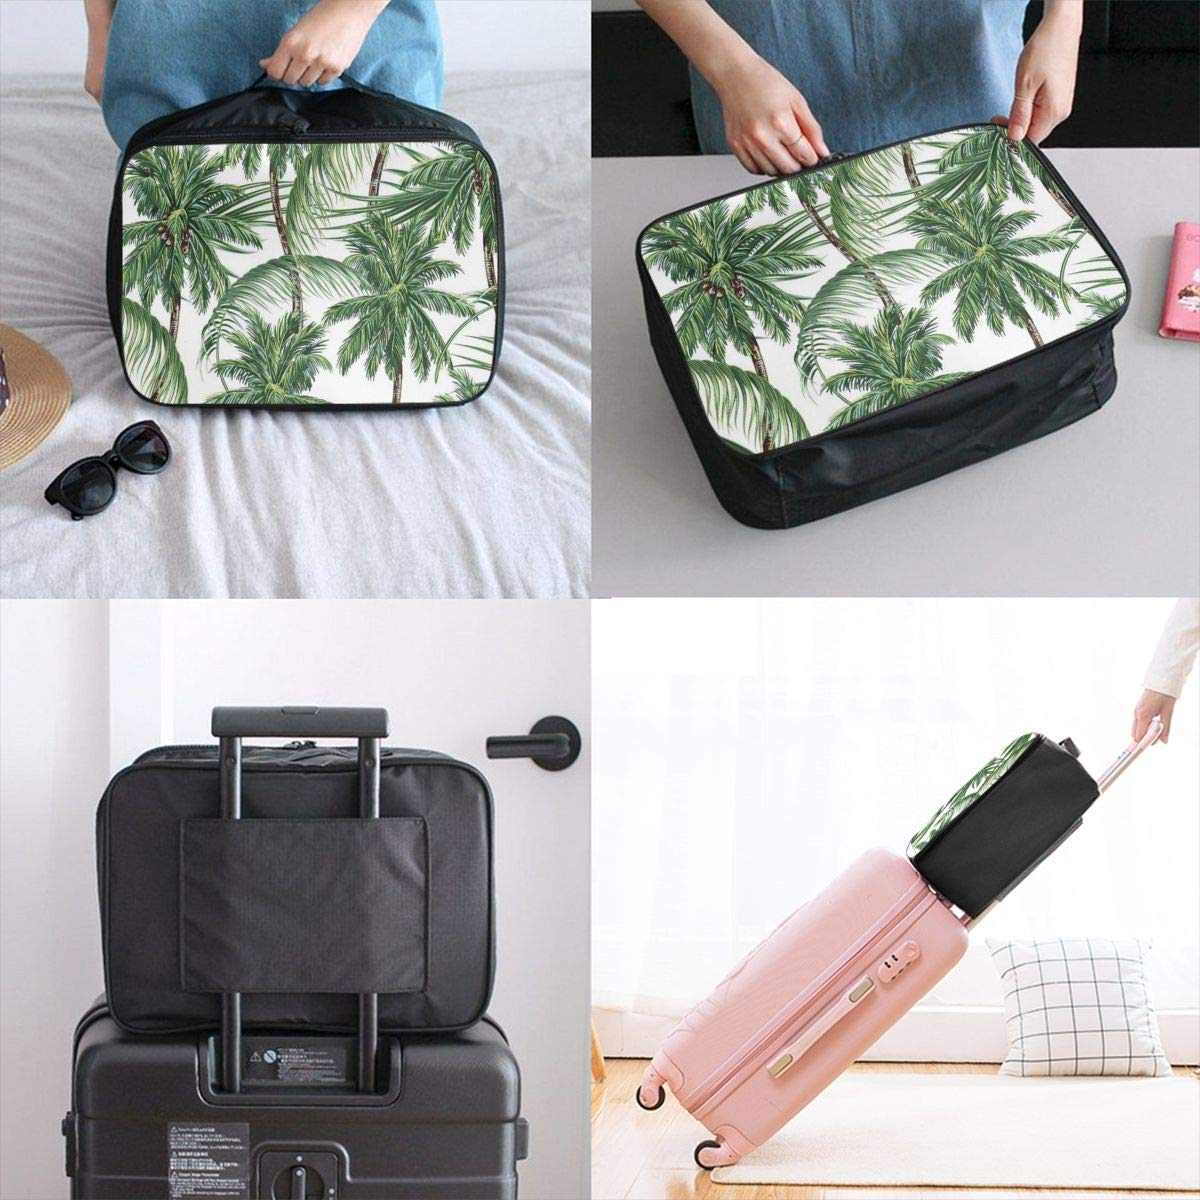 Palm Tree Leaves Travel Lightweight Waterproof Foldable Storage Carry Luggage Duffle Tote Bag Large Capacity In Trolley Handle Bags 6x11x15 Inch